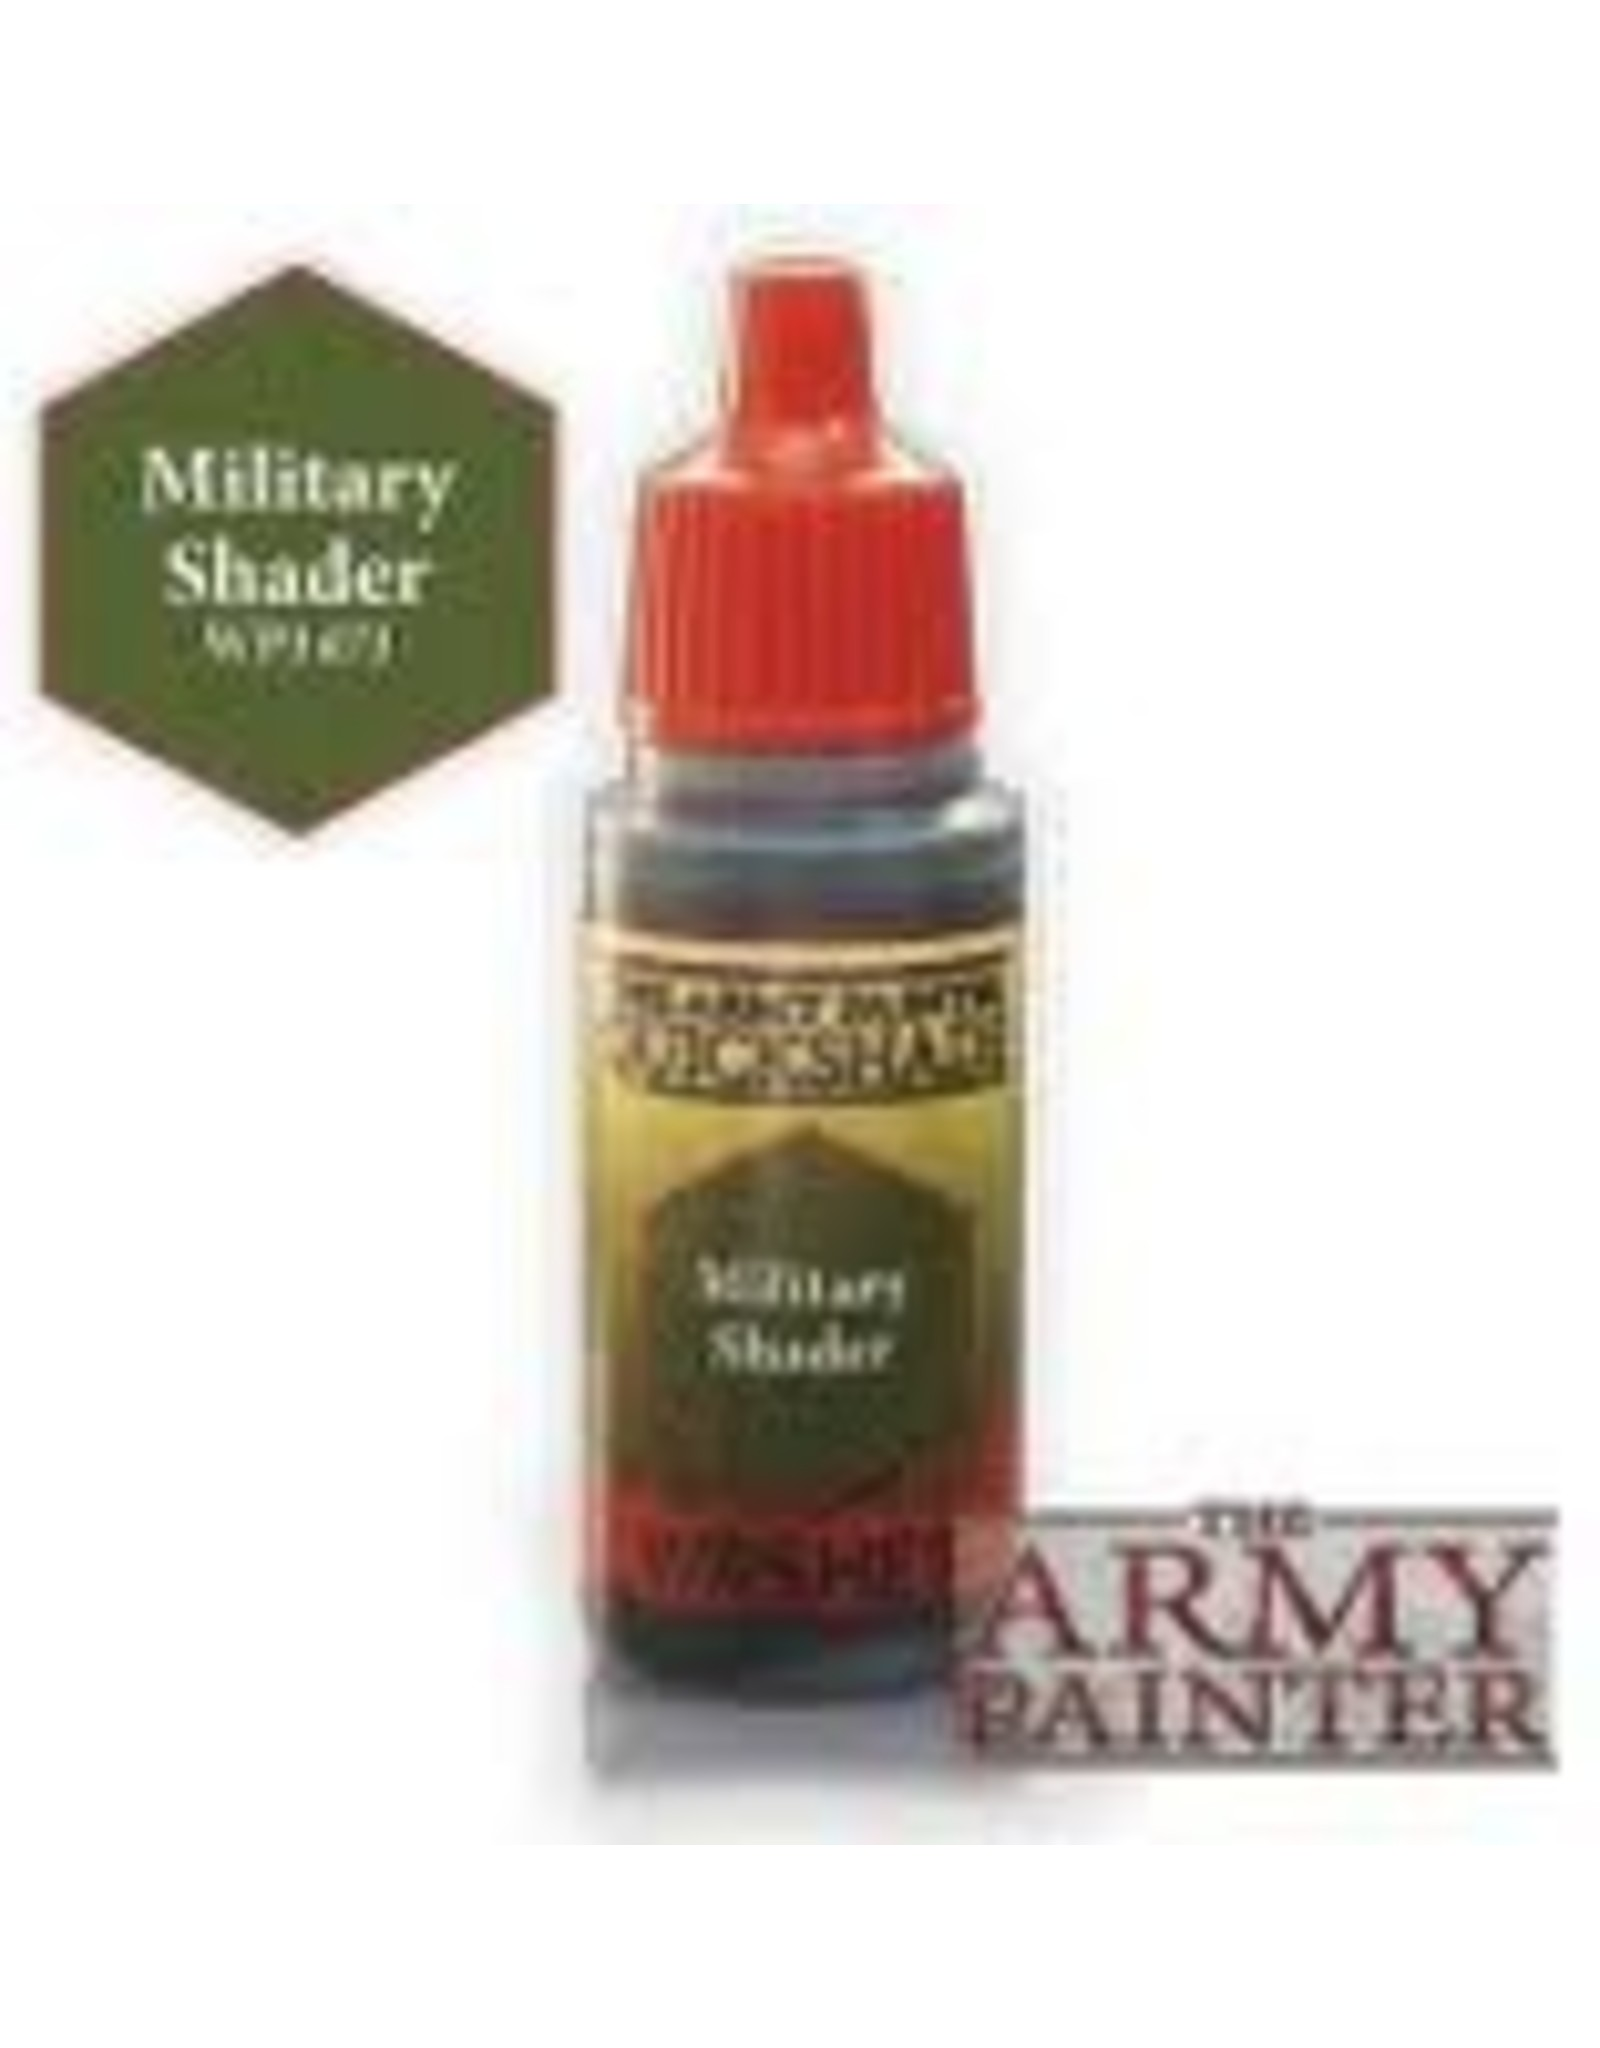 Army Painter Army Painter Washes: Military Shader